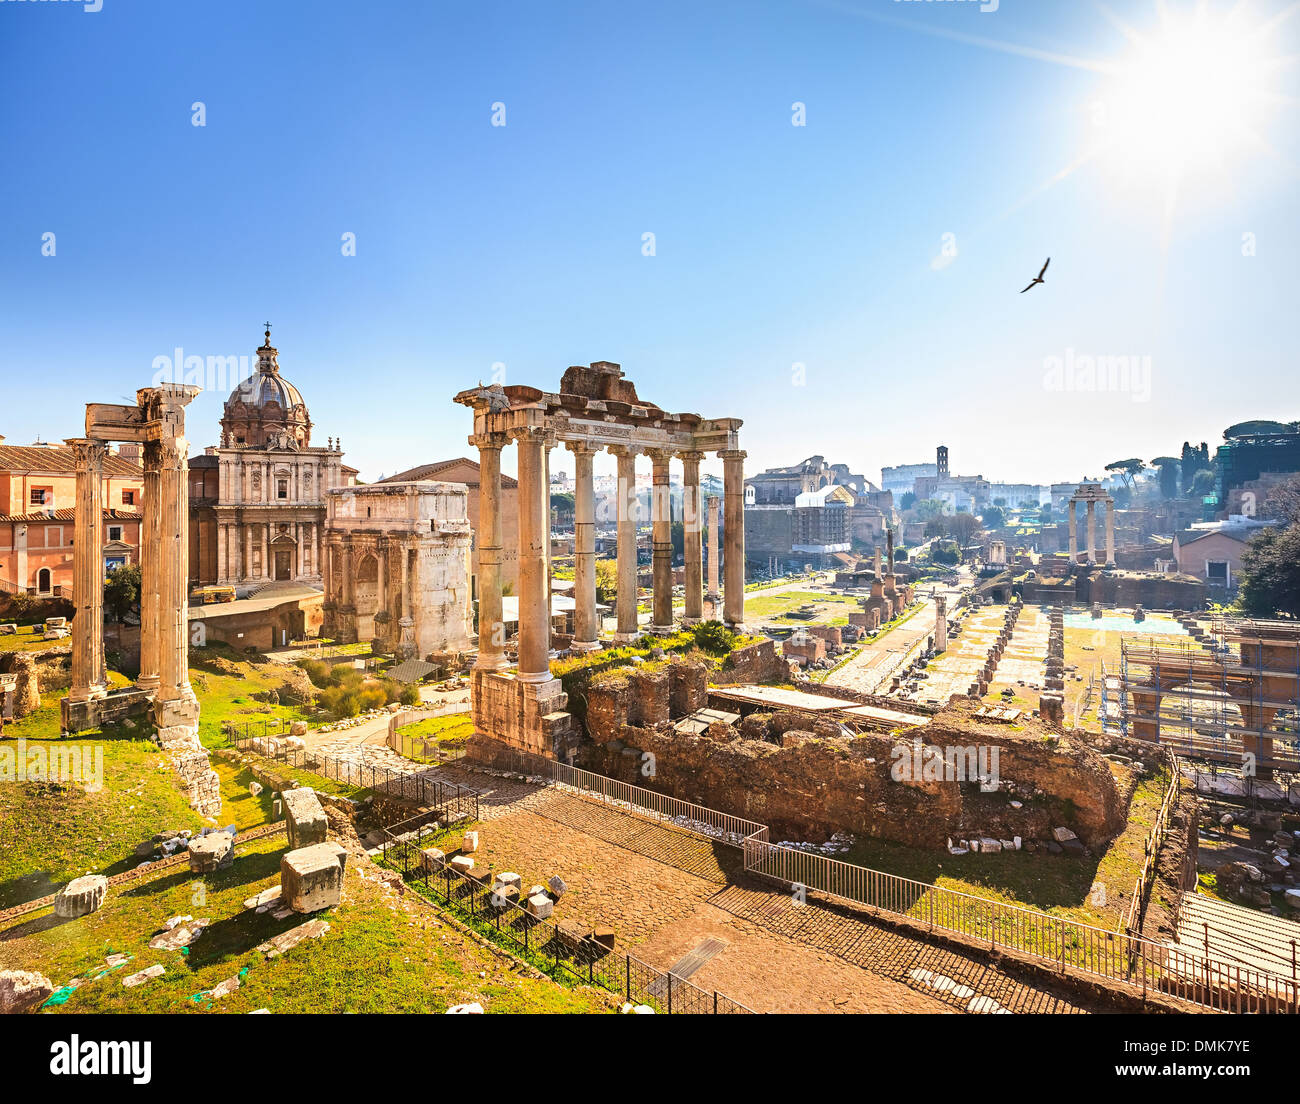 Roman ruins in Rome, Forum - Stock Image